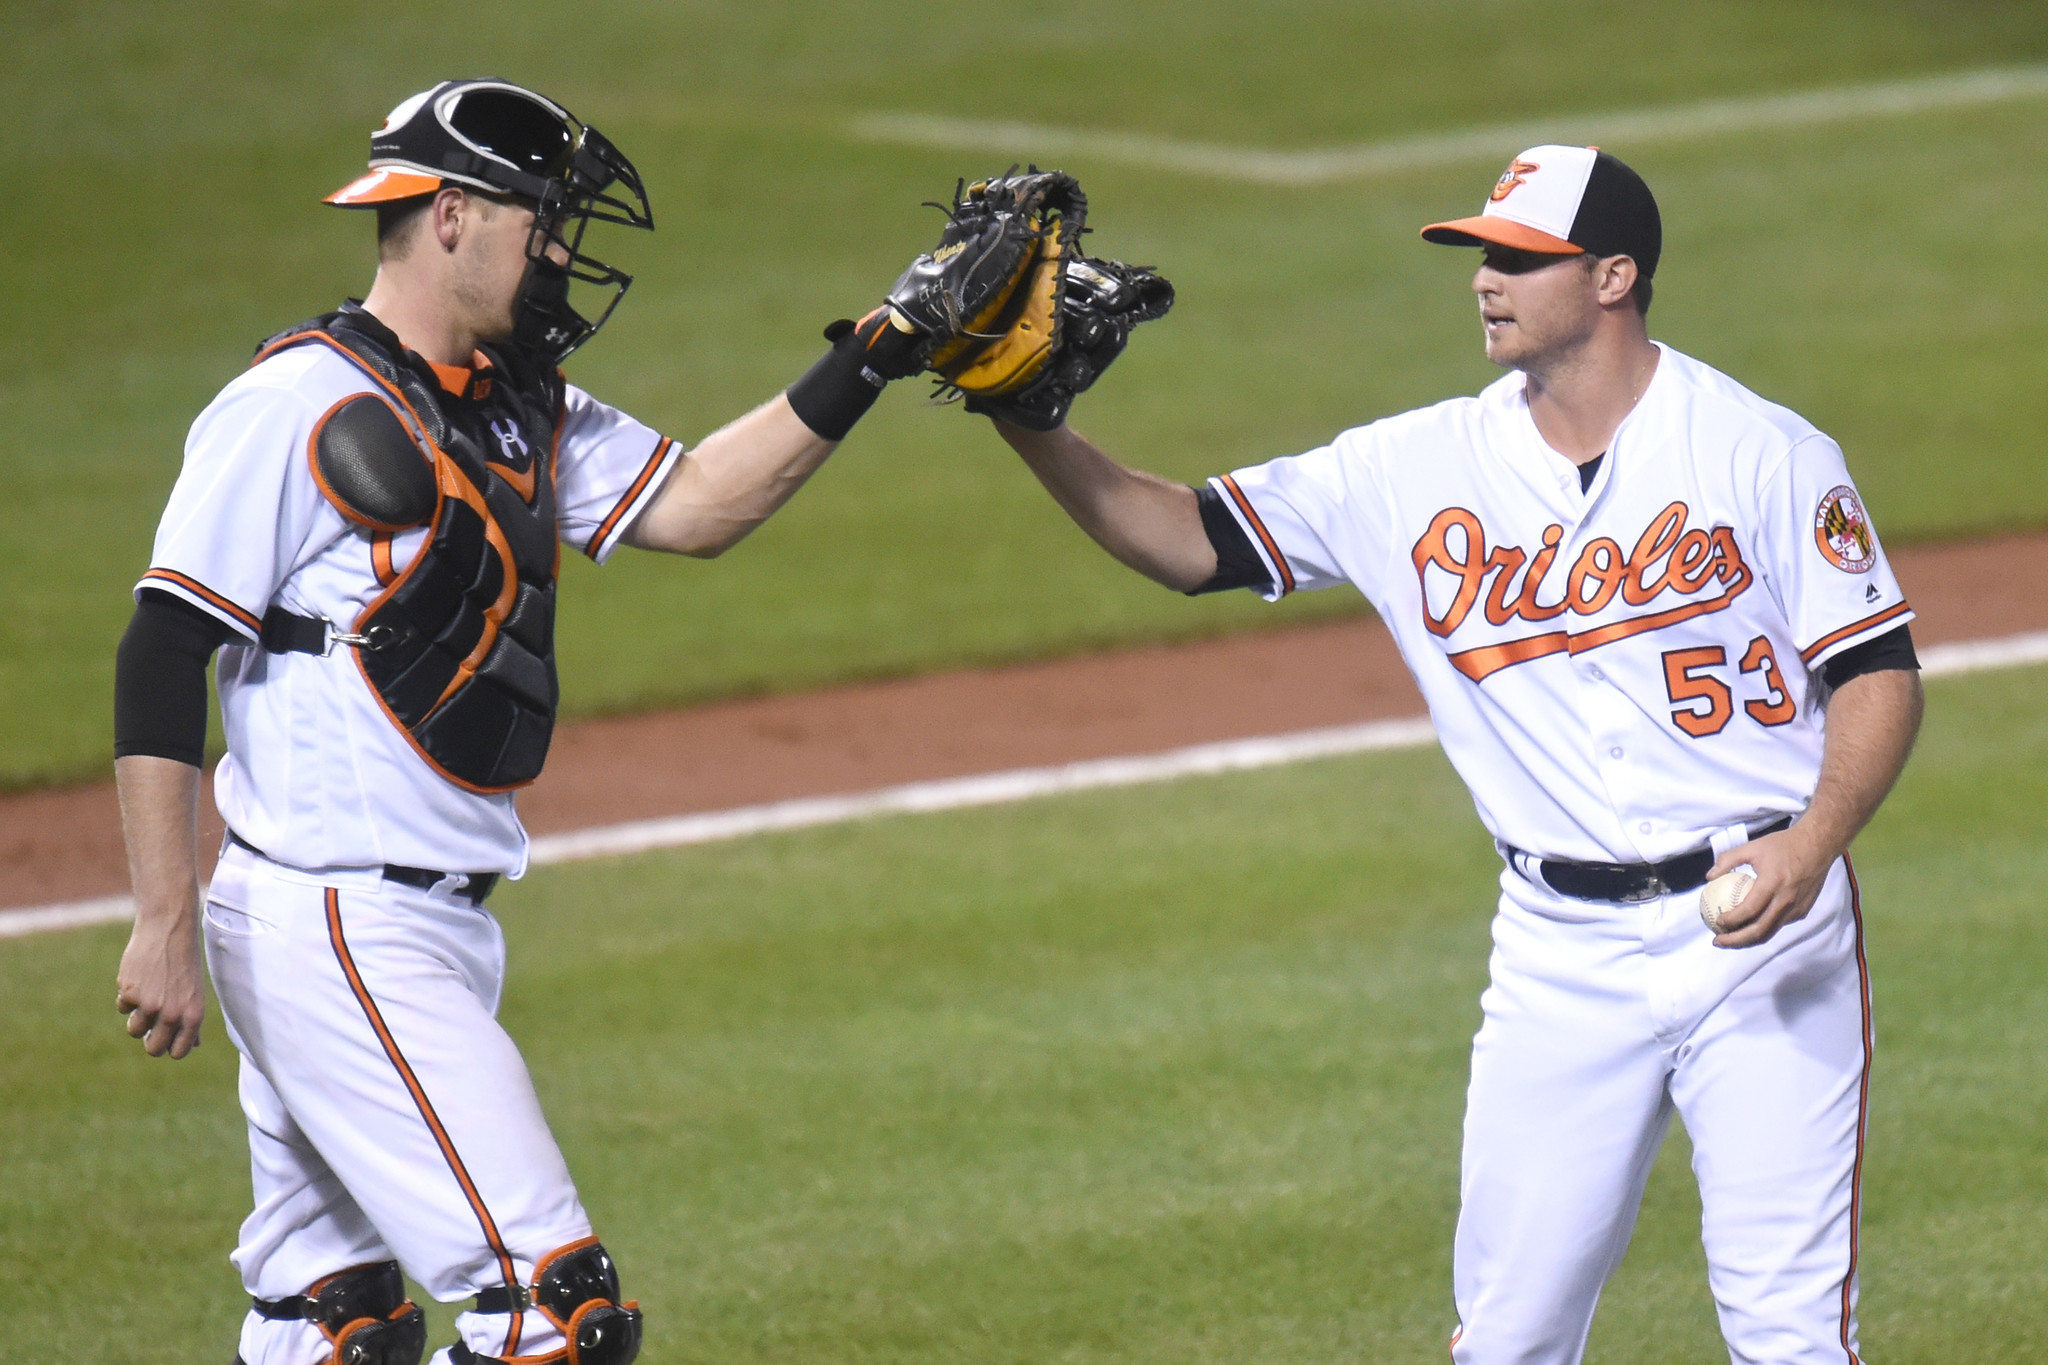 Bal-orioles-bullpen-rights-itself-with-all-hands-approach-to-hold-off-nationals-20160822